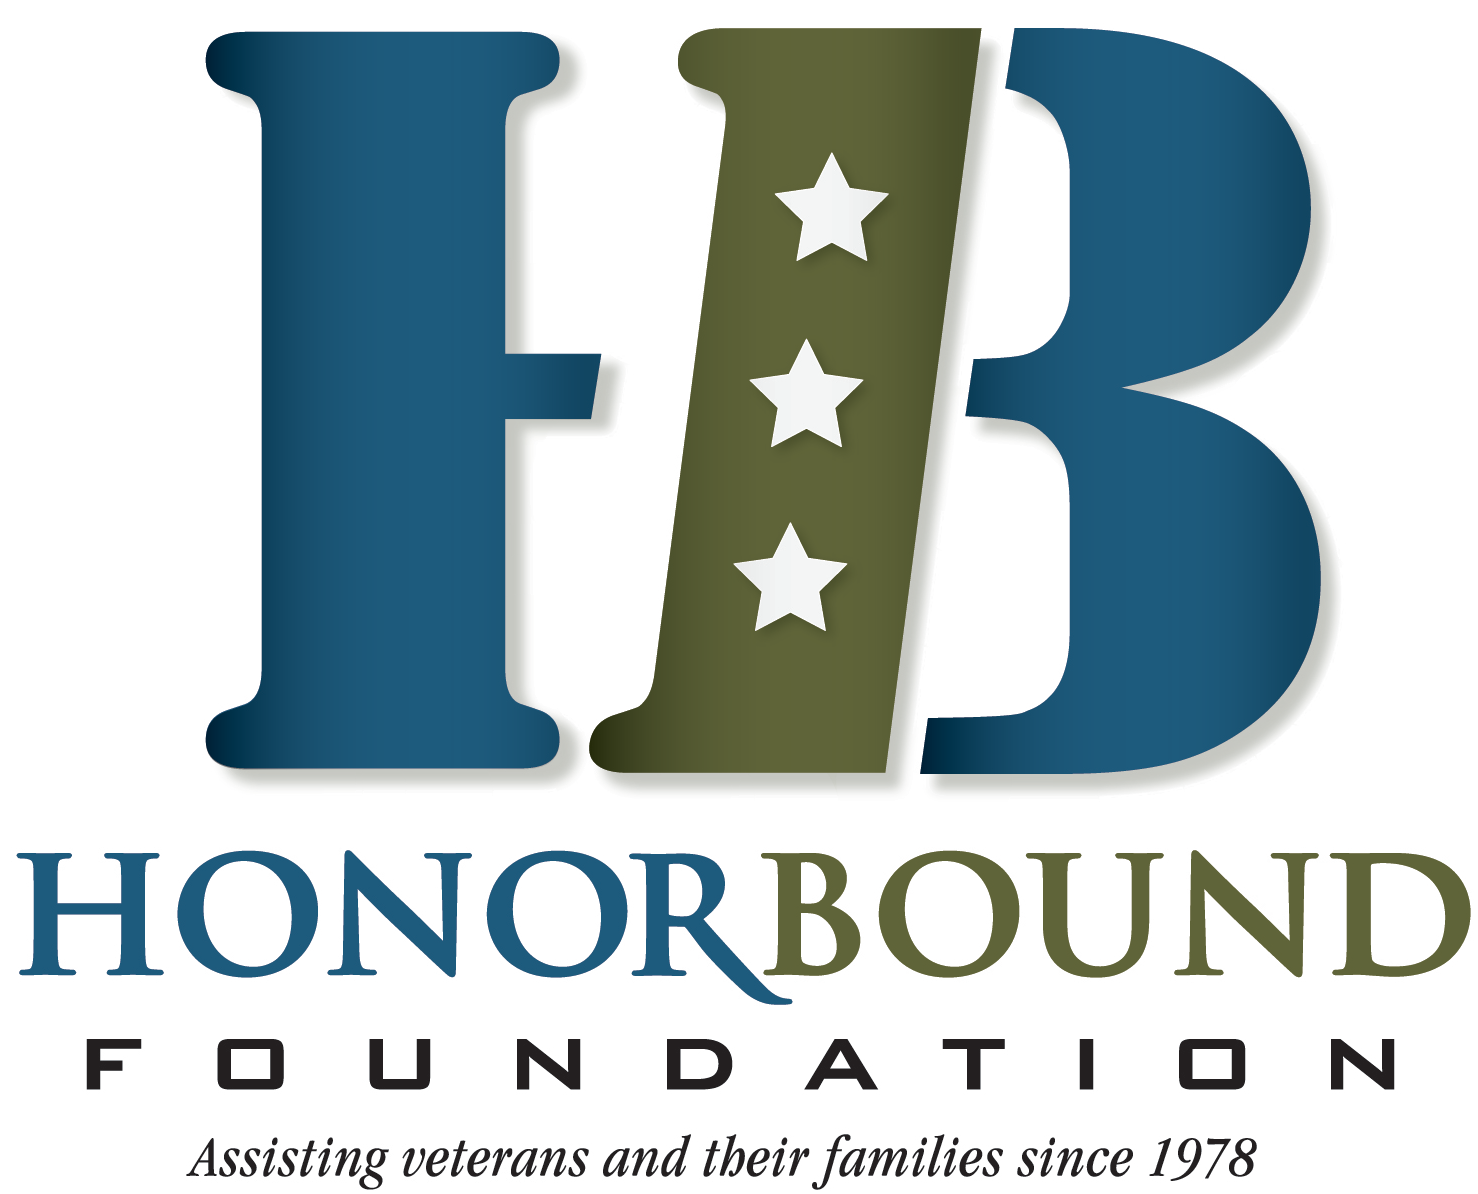 Wisconsin Car Donations - HonorBound Foundation - DonatecarUSA.com